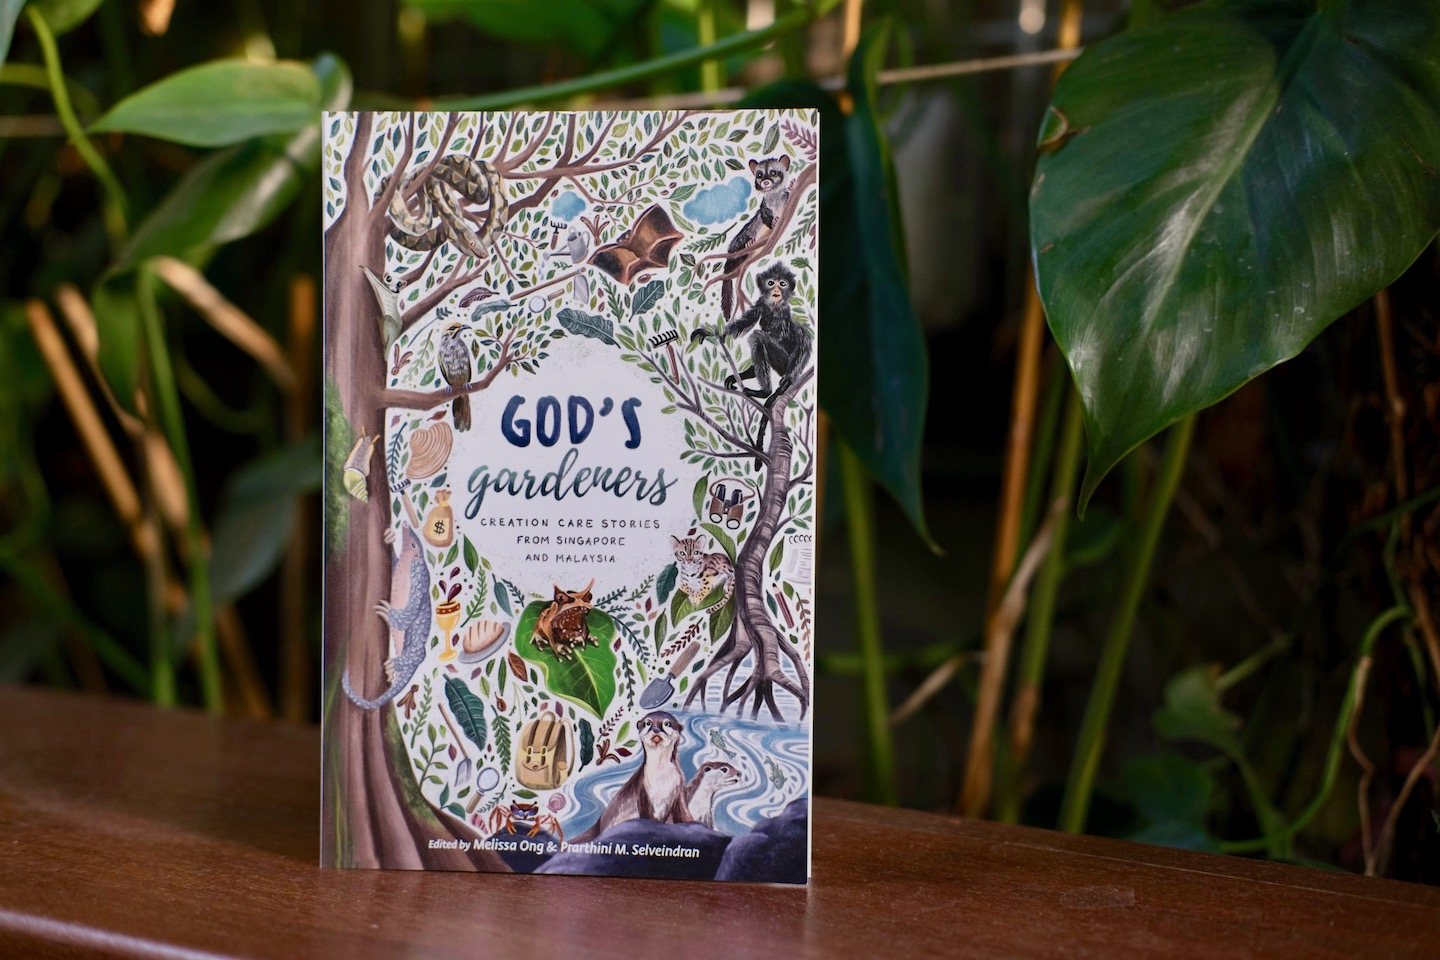 The cover of the book was deliberately designed to include images of animals indigenous to Singapore and Malaysia. Prarthini Selveindran and Melissa Ong, the editors of the book, hope that this will spur readers to appreciate and serve the creation which we are a part of. Photo courtesy of Graceworks.